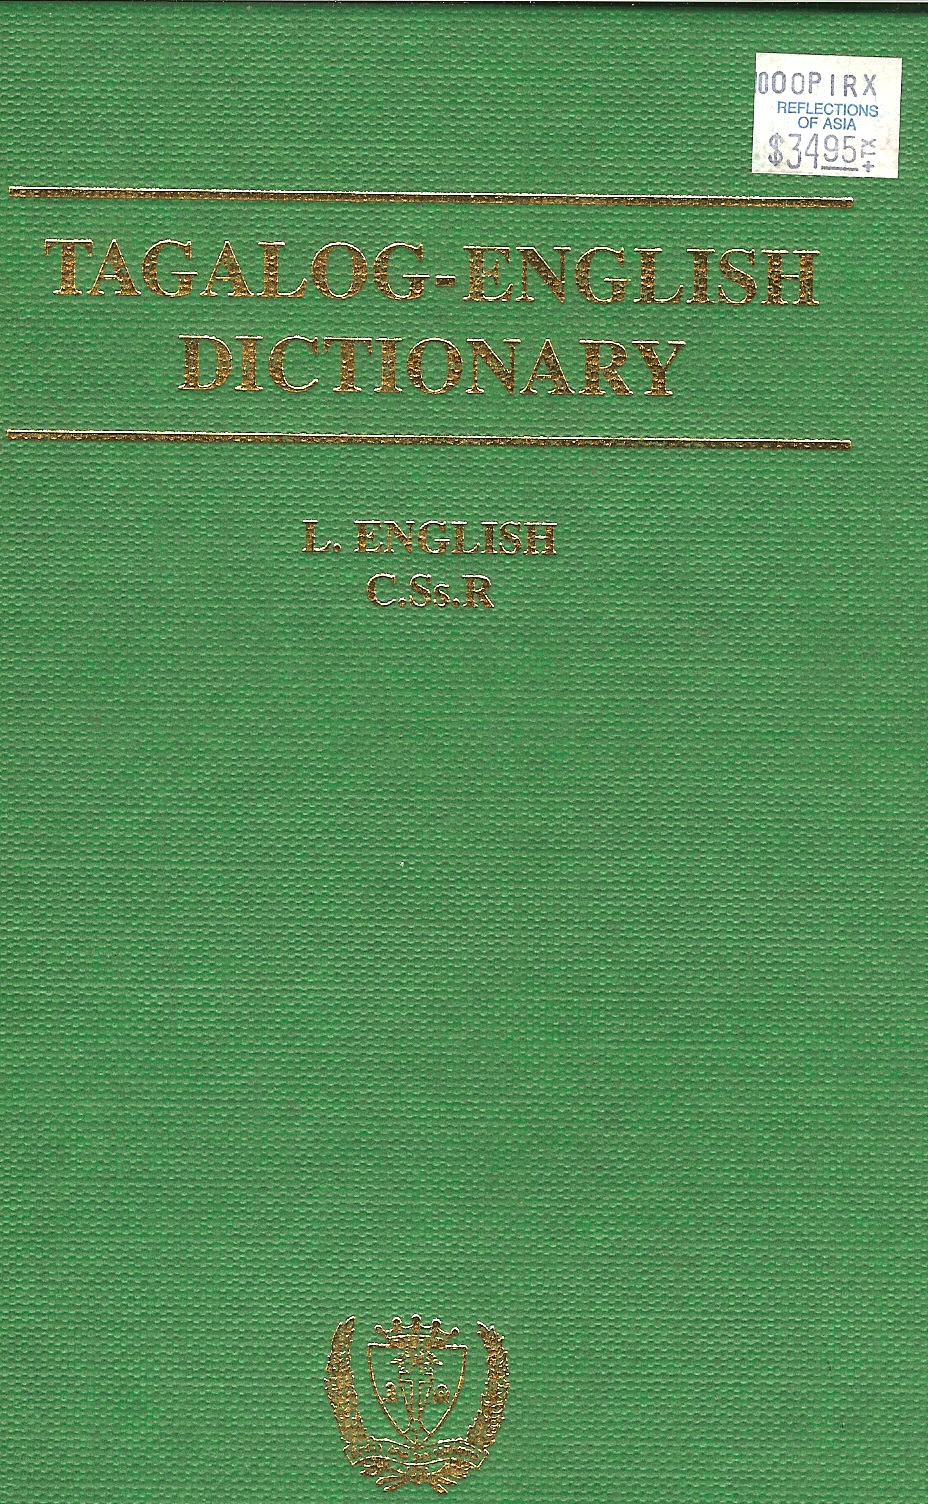 Tagalog english dictionary by l english english tagalog dictionary by